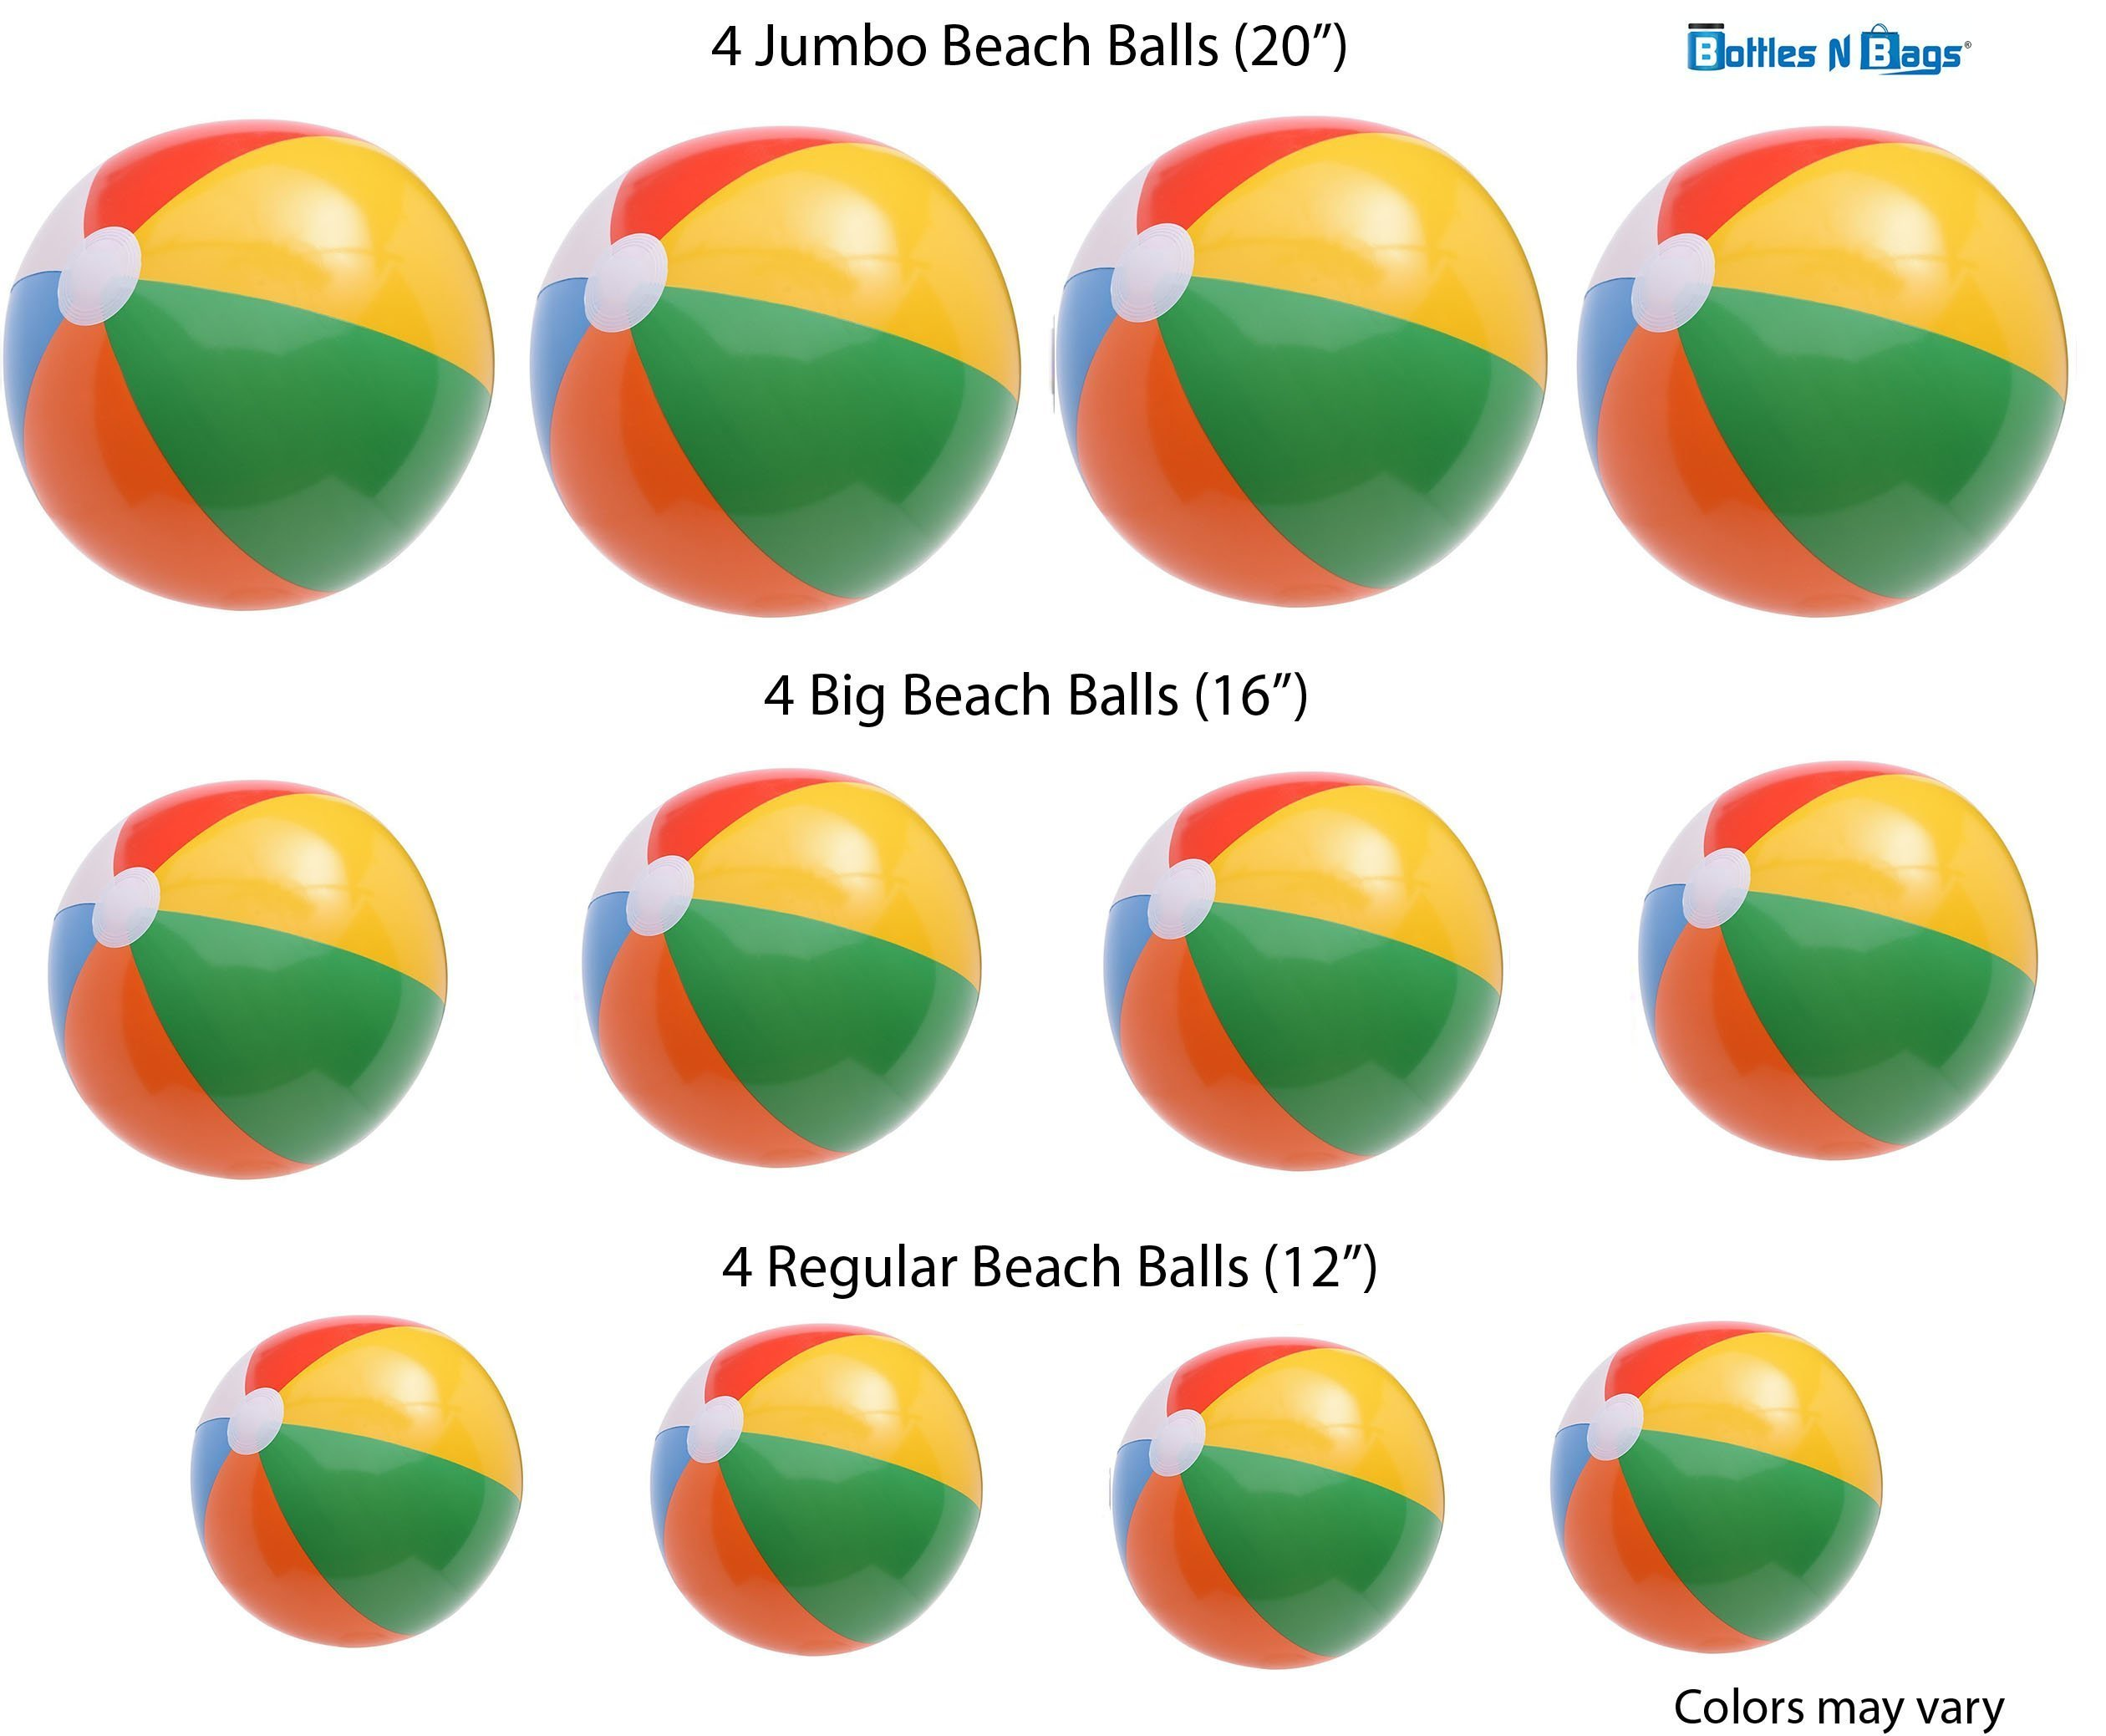 Bottles N Bags Beach Balls Mixed sizes, JUMBO 20'',LARGE BIG size 16'' and regular BIG size 12'', 4 of each, 12 pack Rainbow Inflatable, by by Bottles N Bags